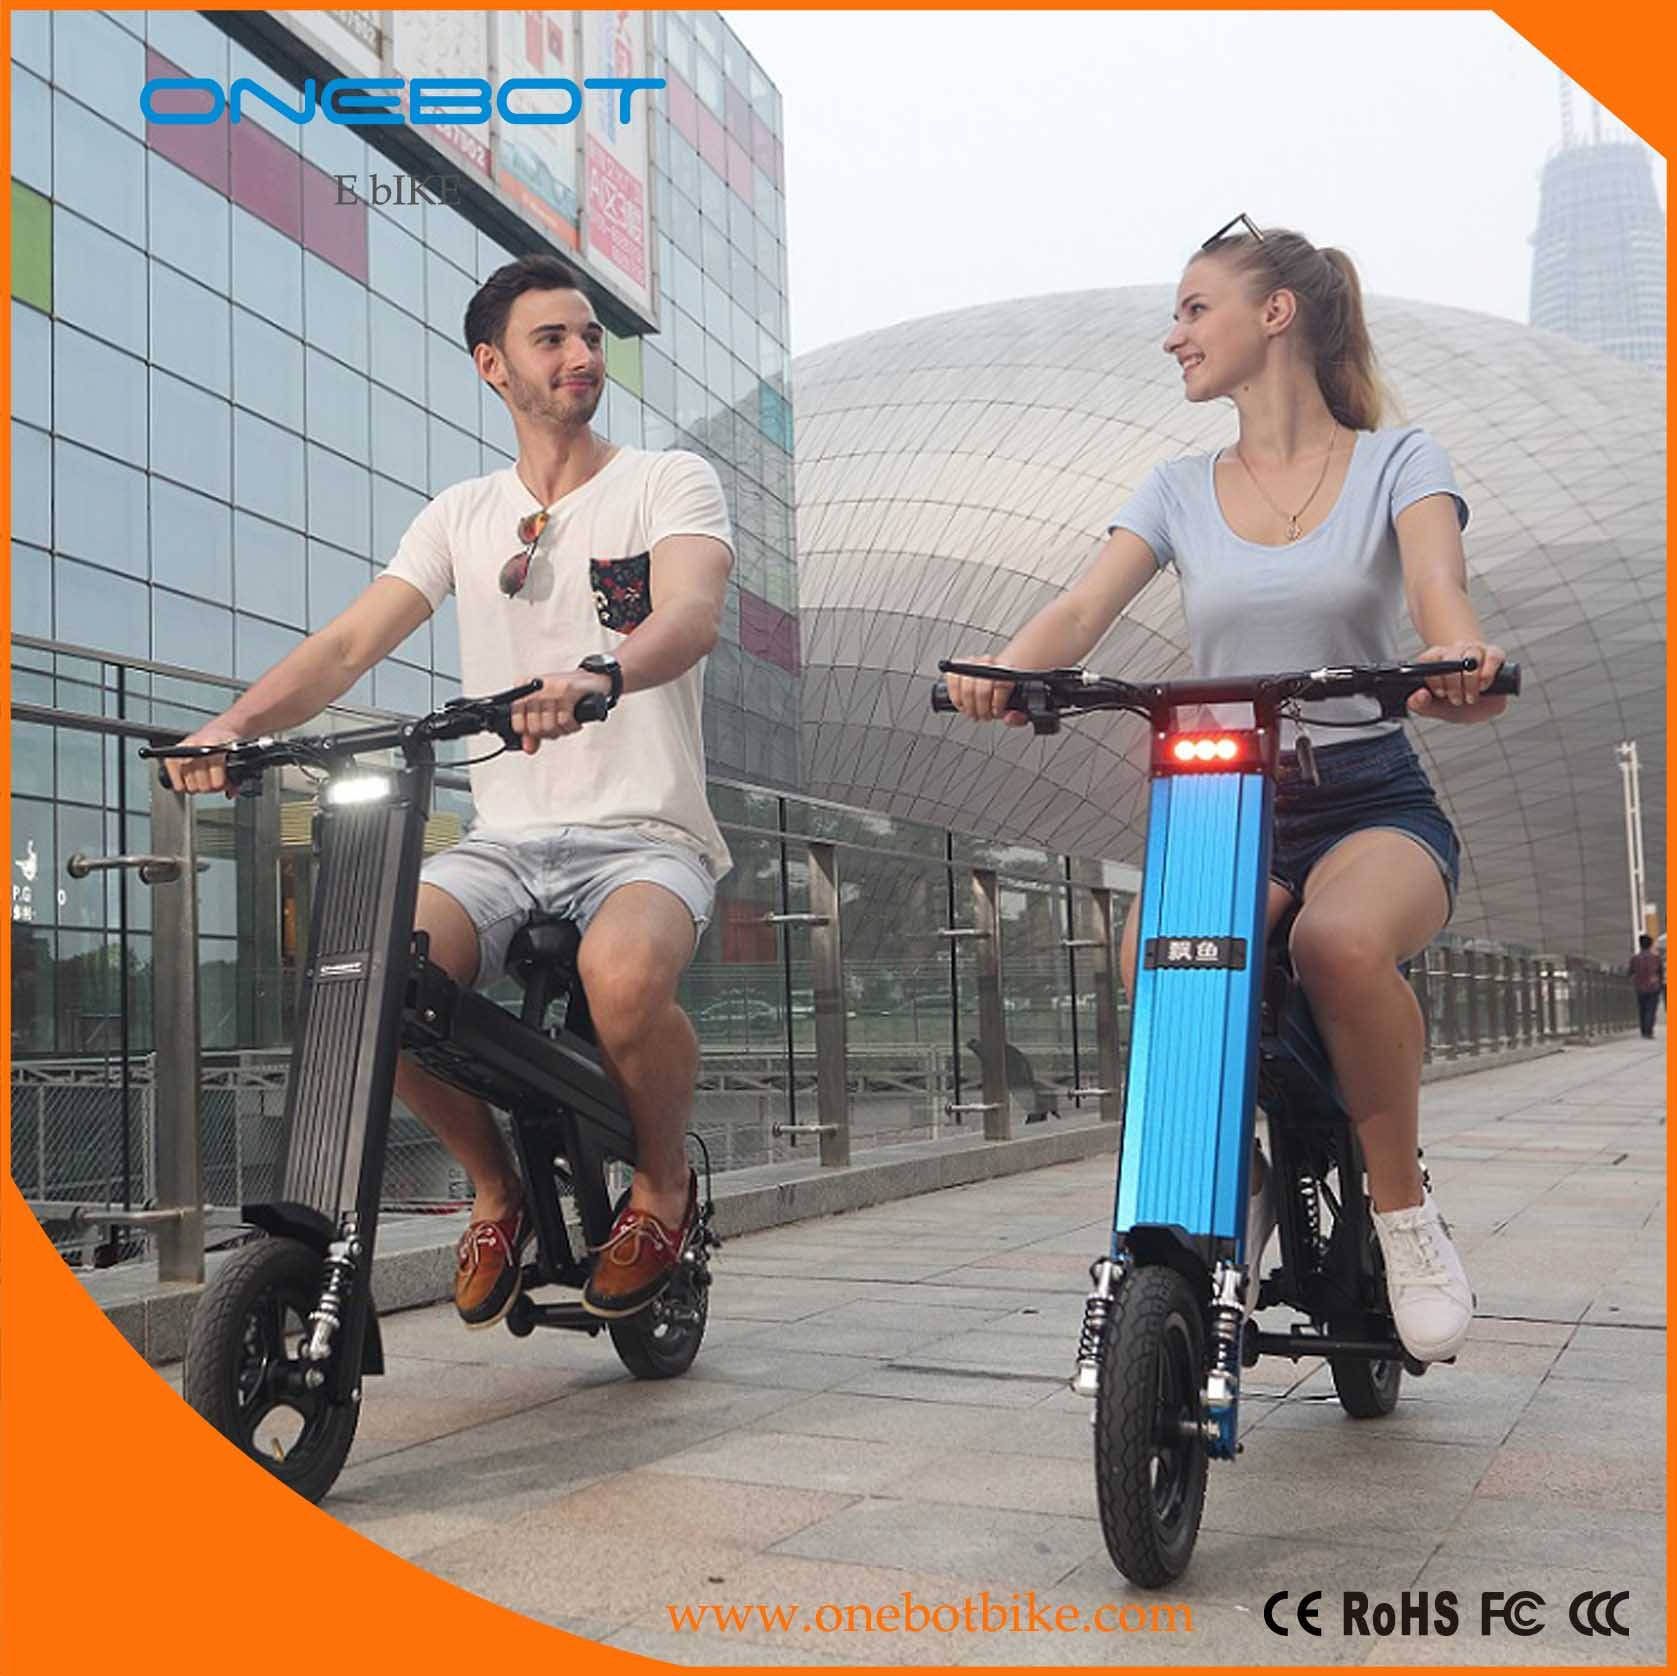 ONEBOT T8 250W 500W dual battery foldable electric bike